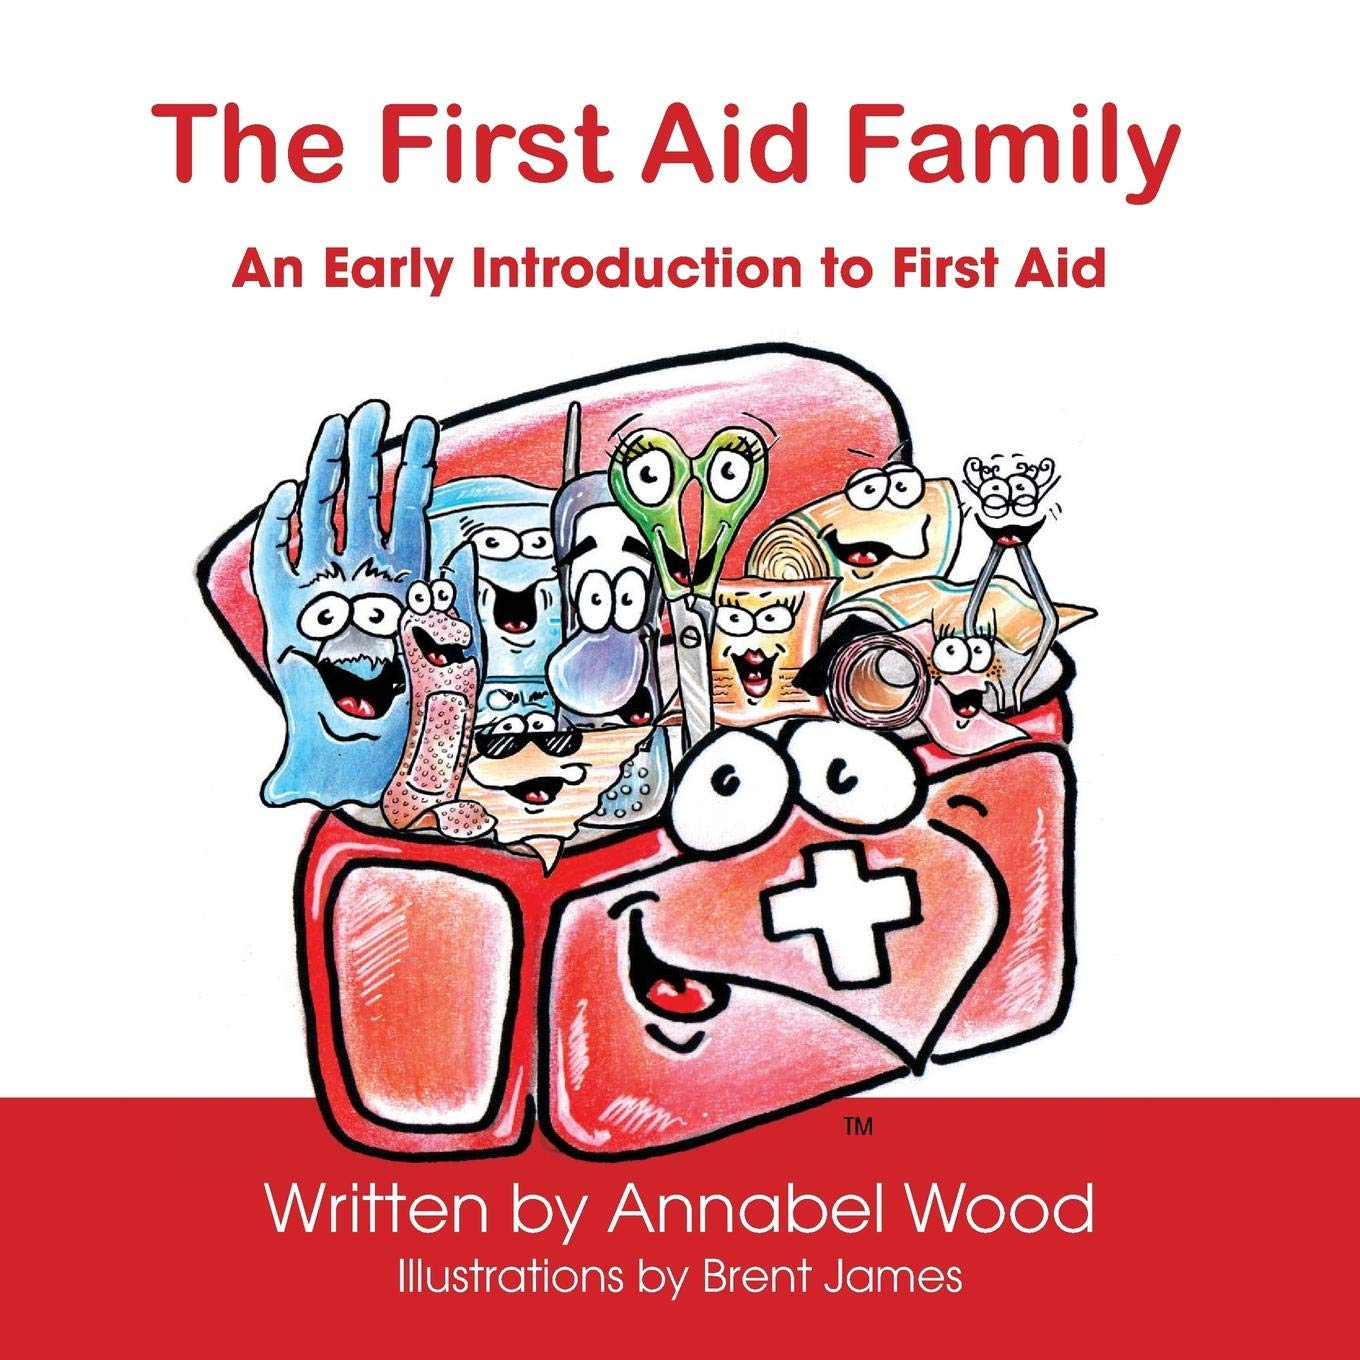 The First Aid Family - An Early Introduction to First Aid: Annabel